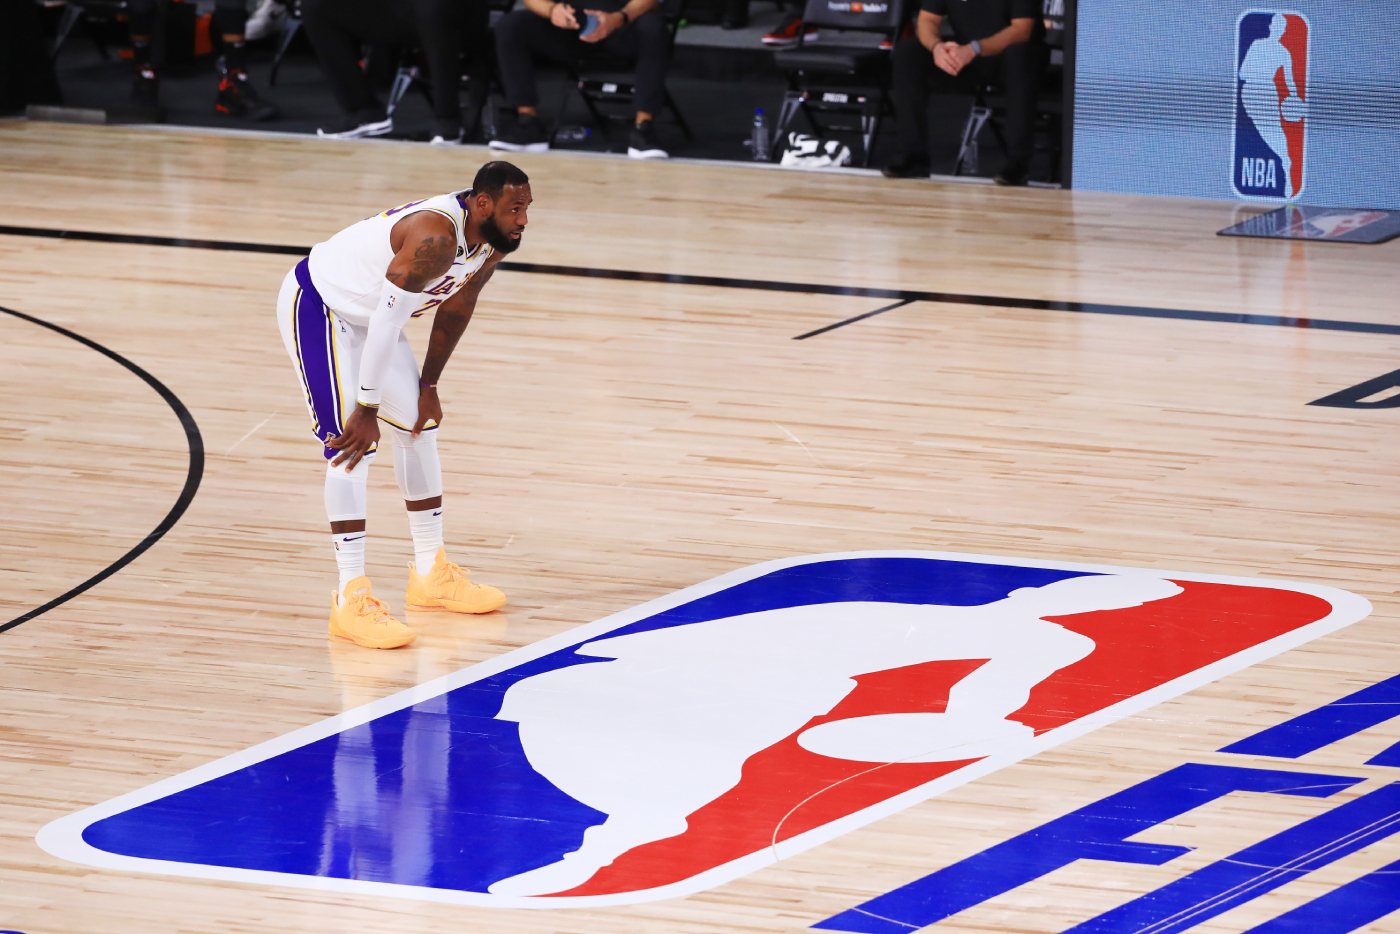 LeBron James and other NBA players almost boycotted the 2019-20 NBA season. His message to his family proved how close he was to walking away.